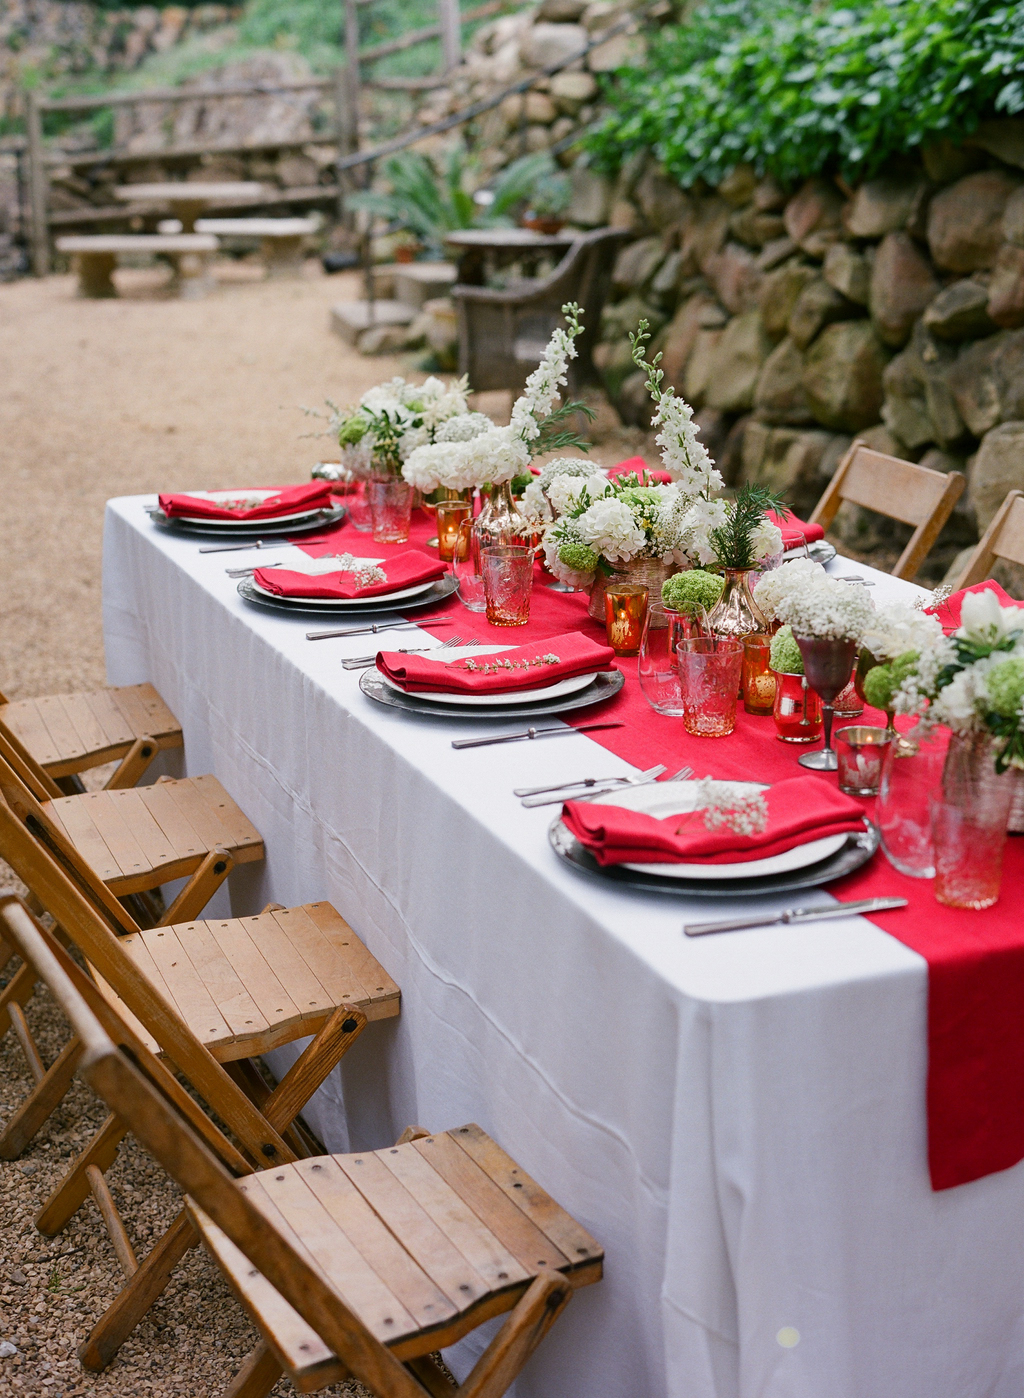 Styled-wedding-santa-barbara-chic-beaux-arts-photographie-italian-bohemian-wedding-venue-table-setting-red-white-flowers-antique-glass-094.full